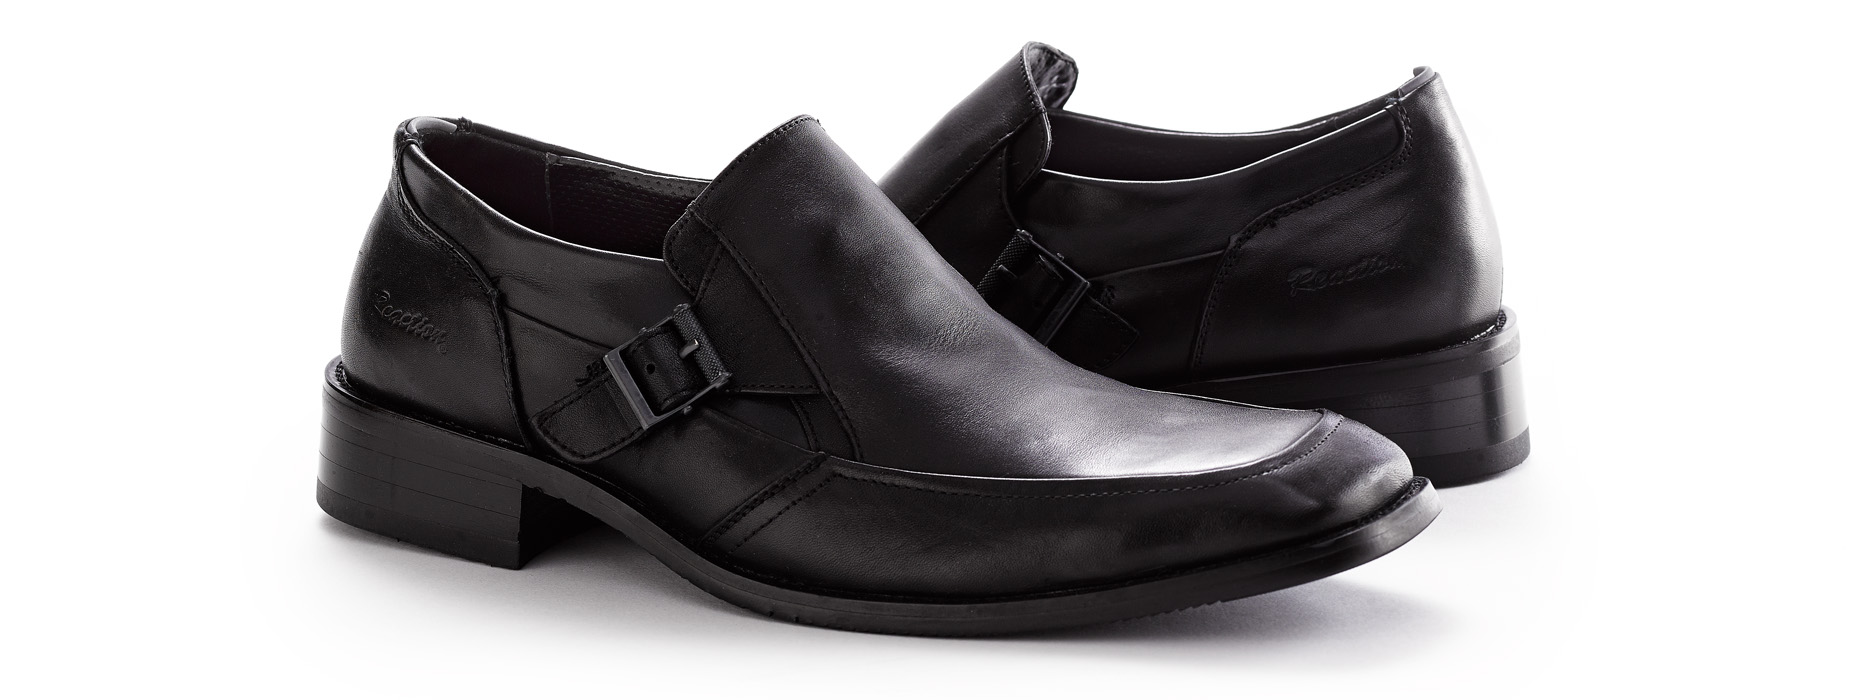 Kenneth Cole Shoes.jpg